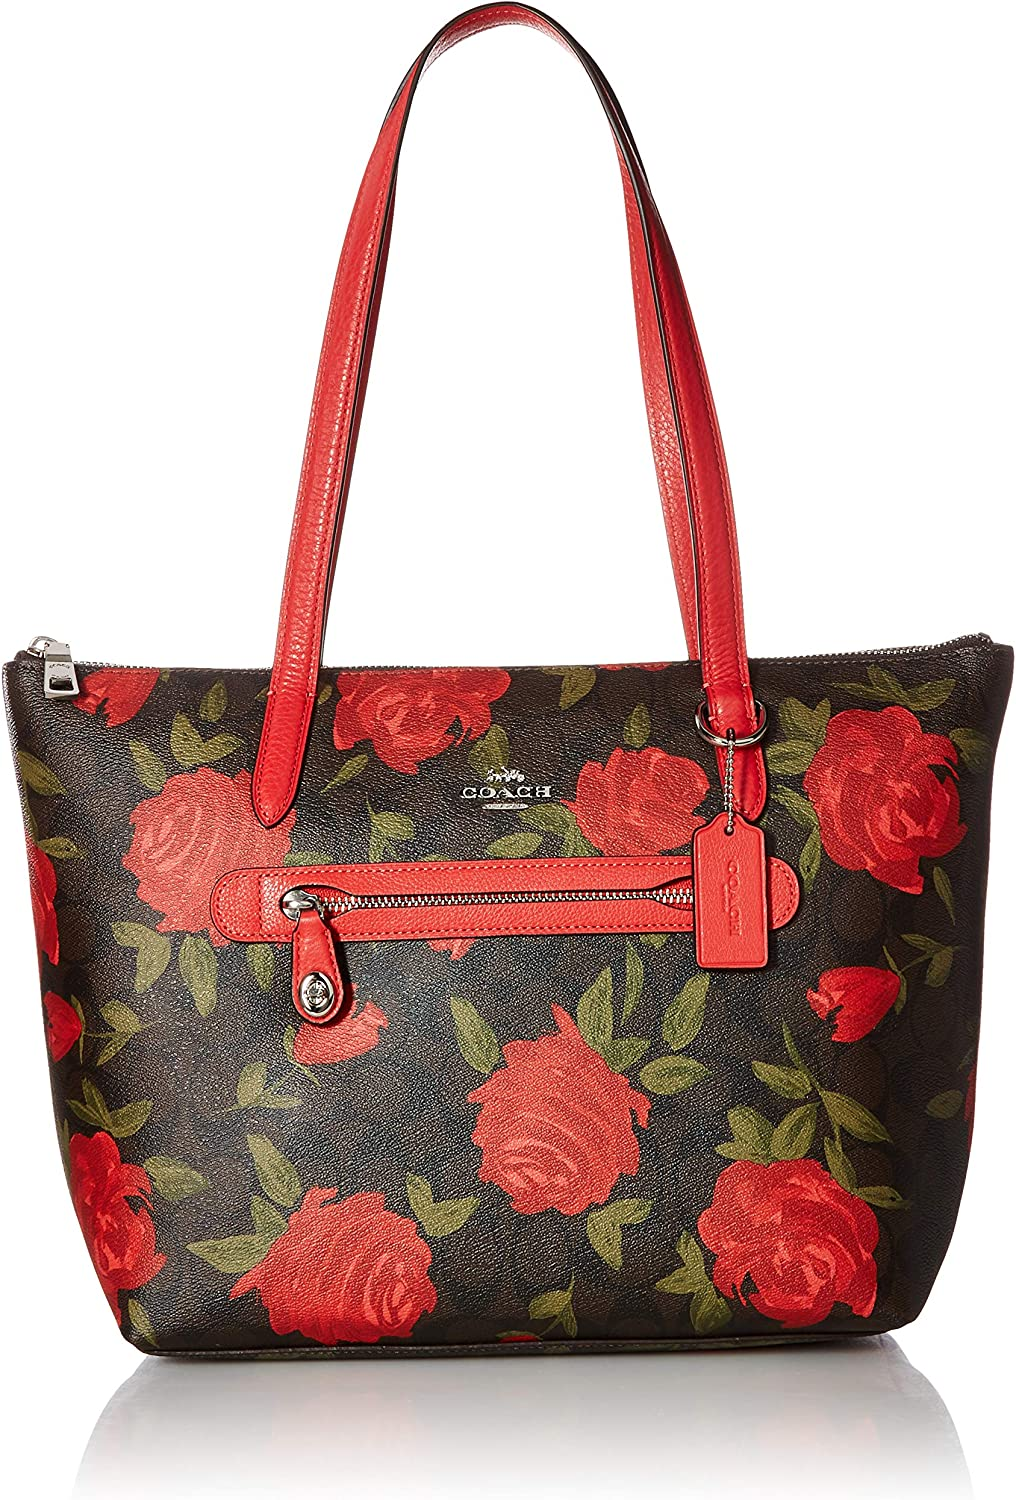 COACH Womens Camo Rose Taylor Tote